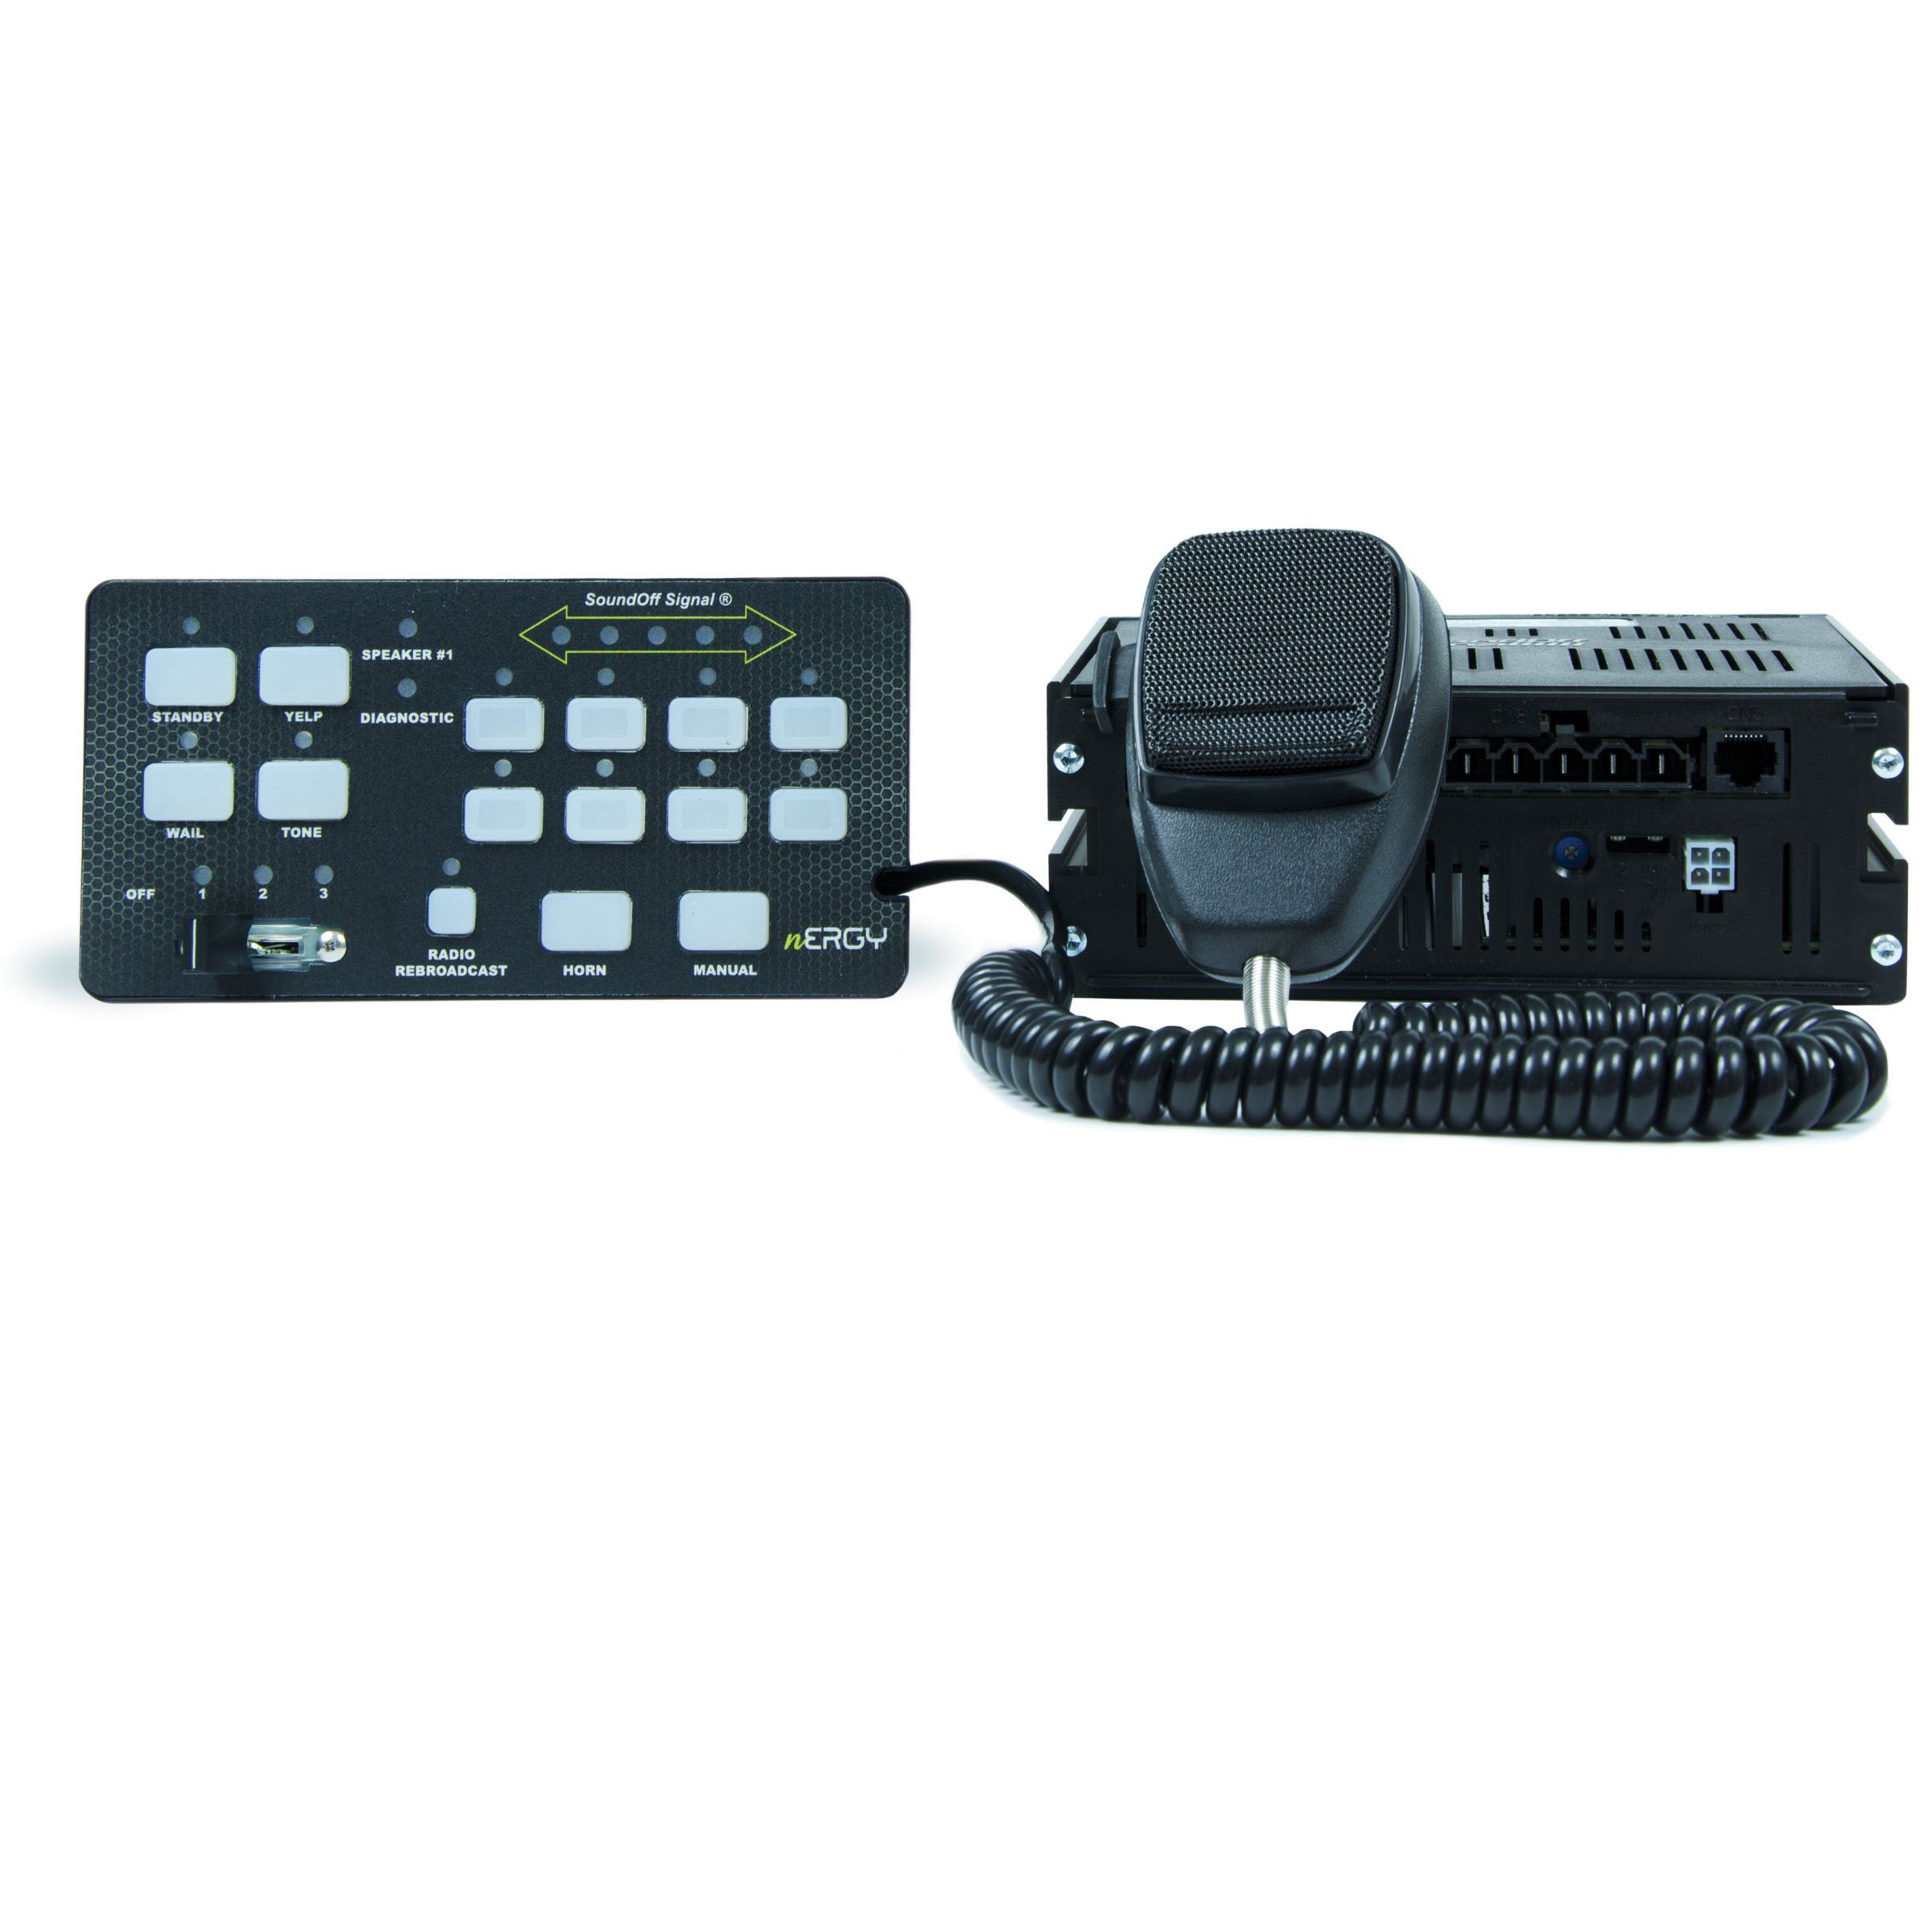 nERGY® 400 Series Remote Siren Product Image